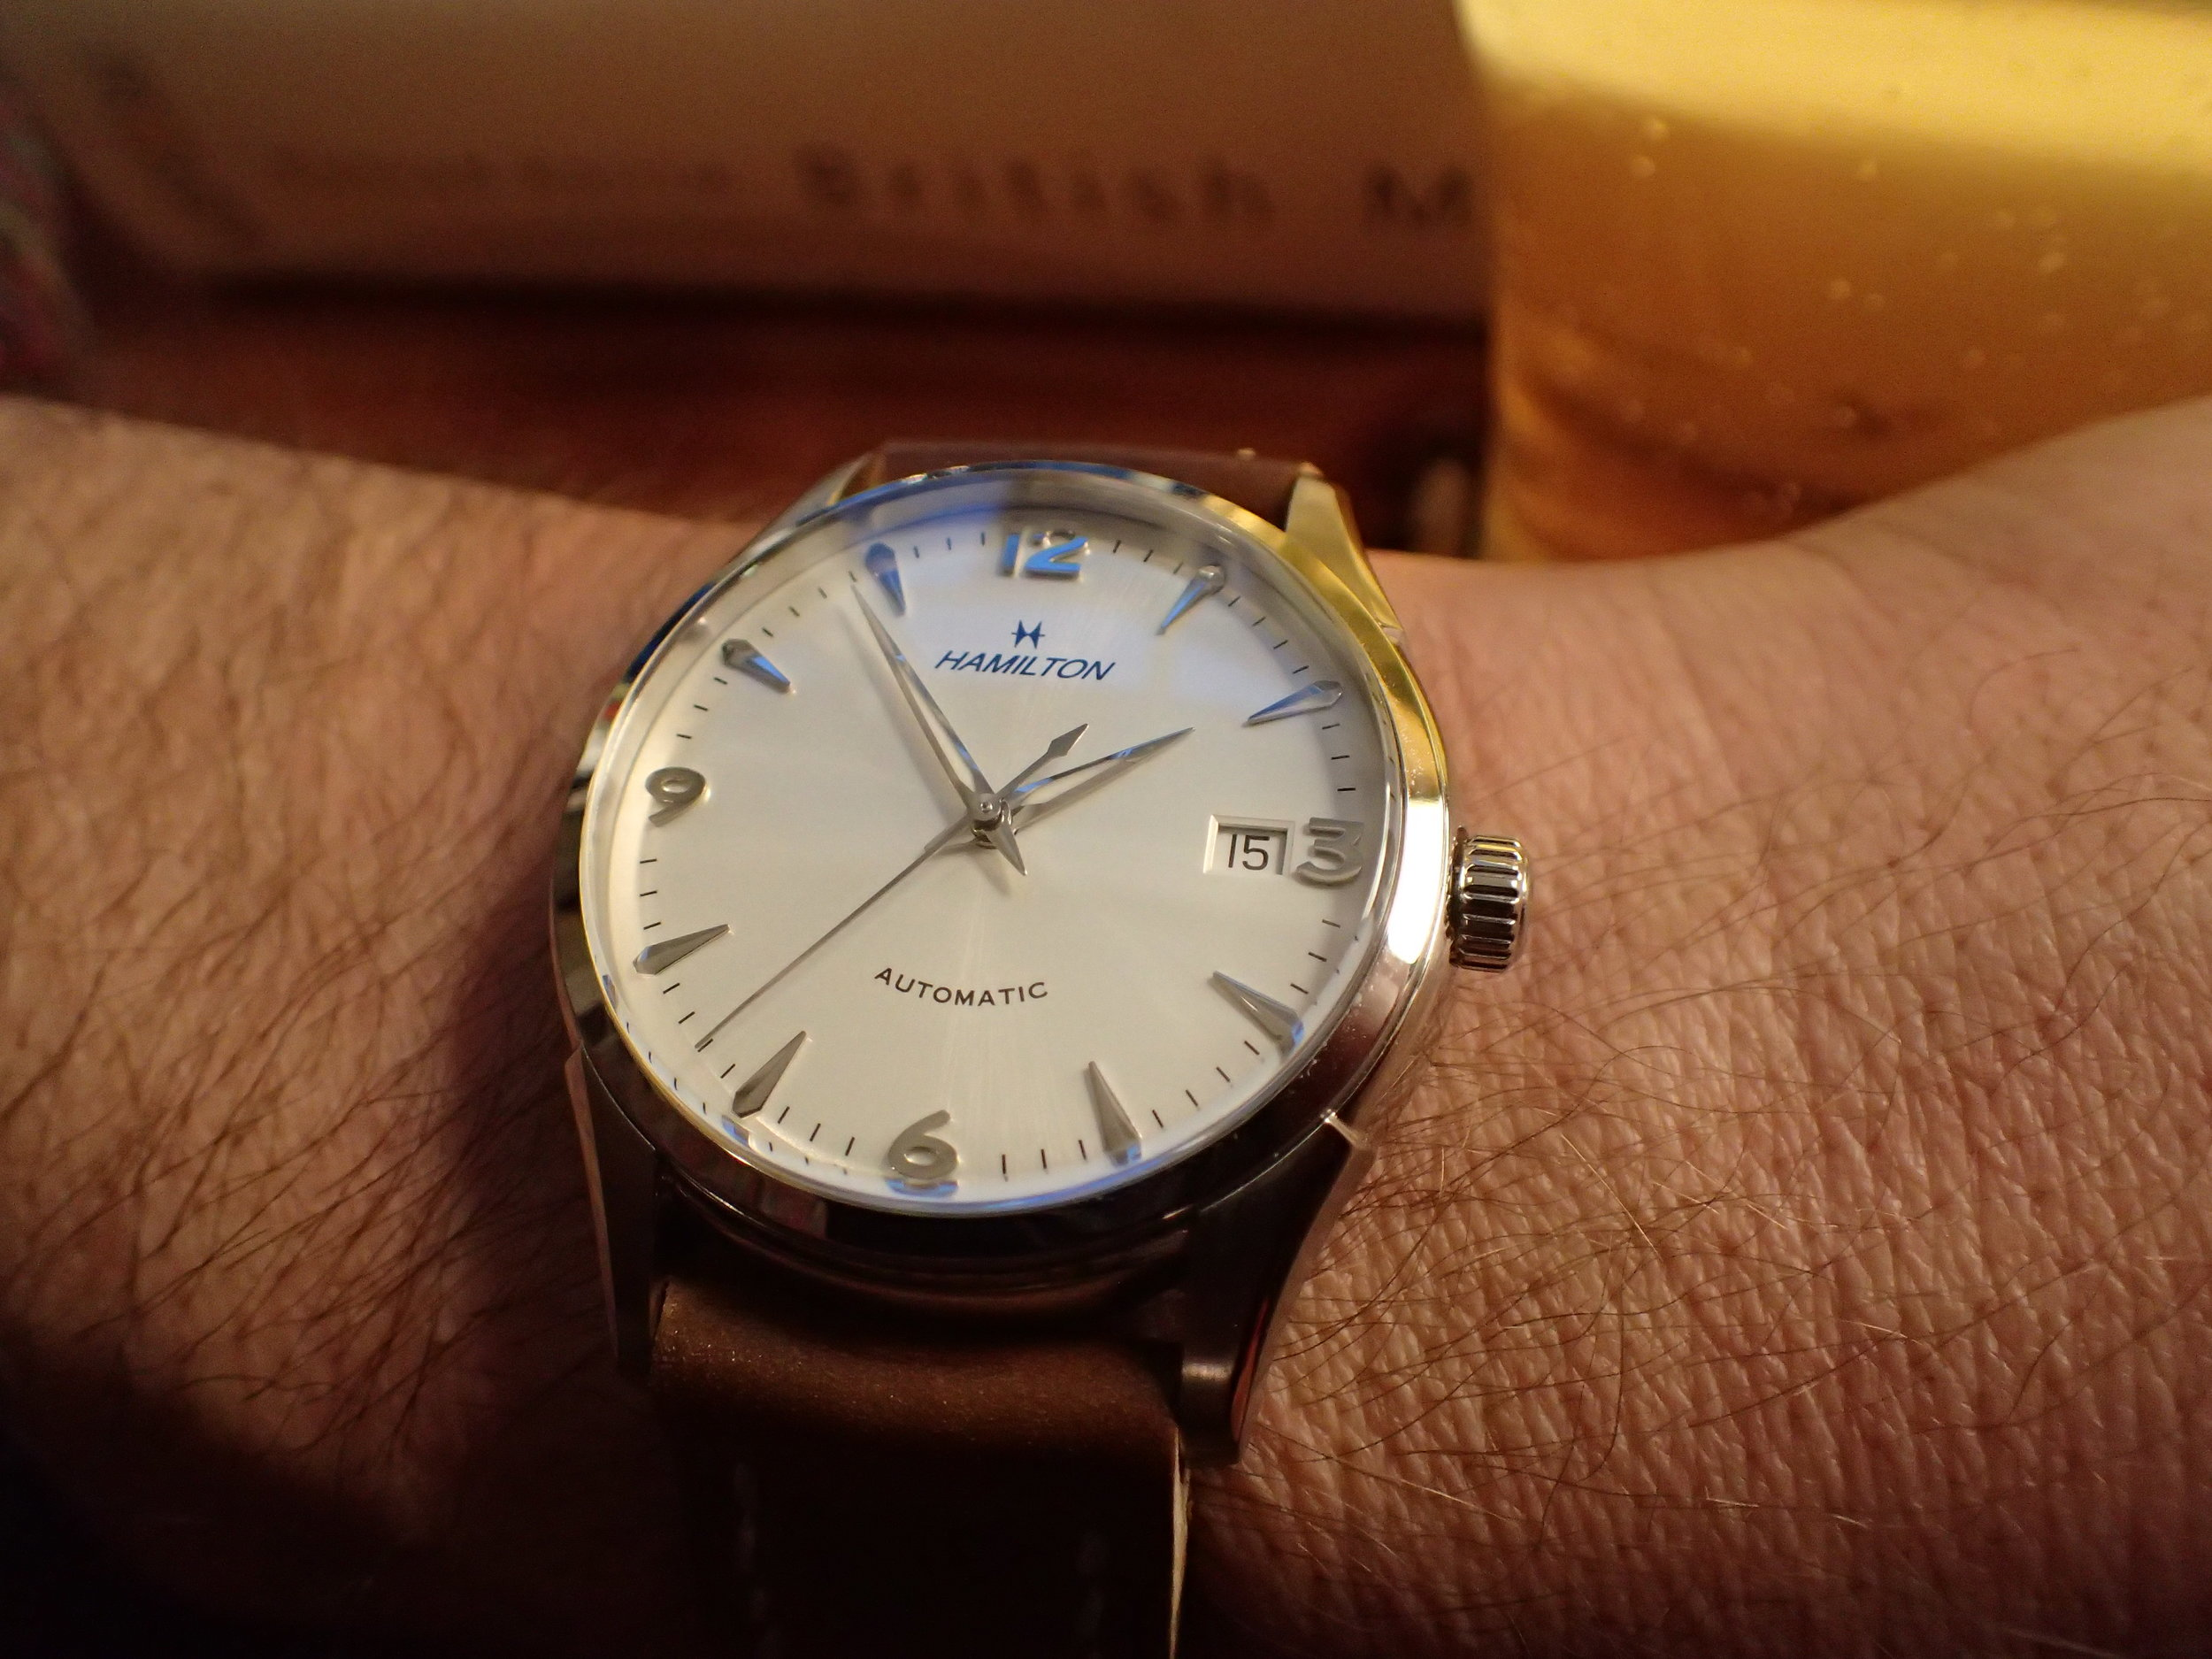 Wearing the Thin-O-Matic 38 feels like wearing your grandfather's watch. Except it fits you better. And it keeps better time.